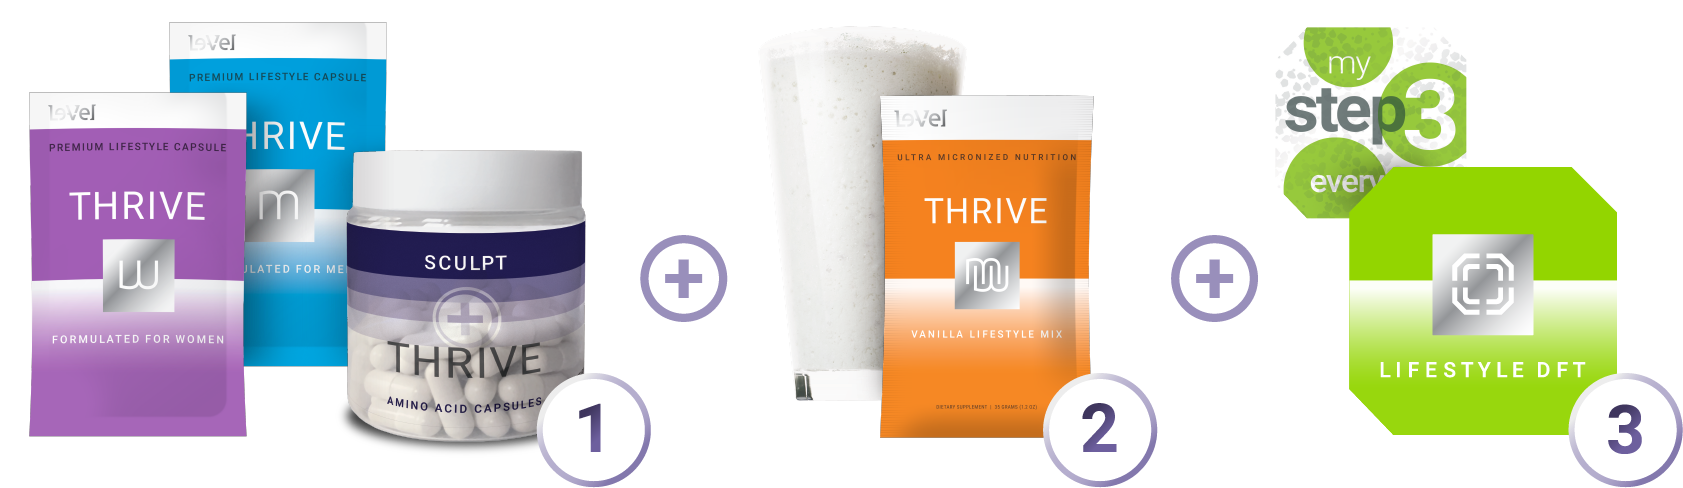 The THRIVE Sculpt Experience Product Lineup